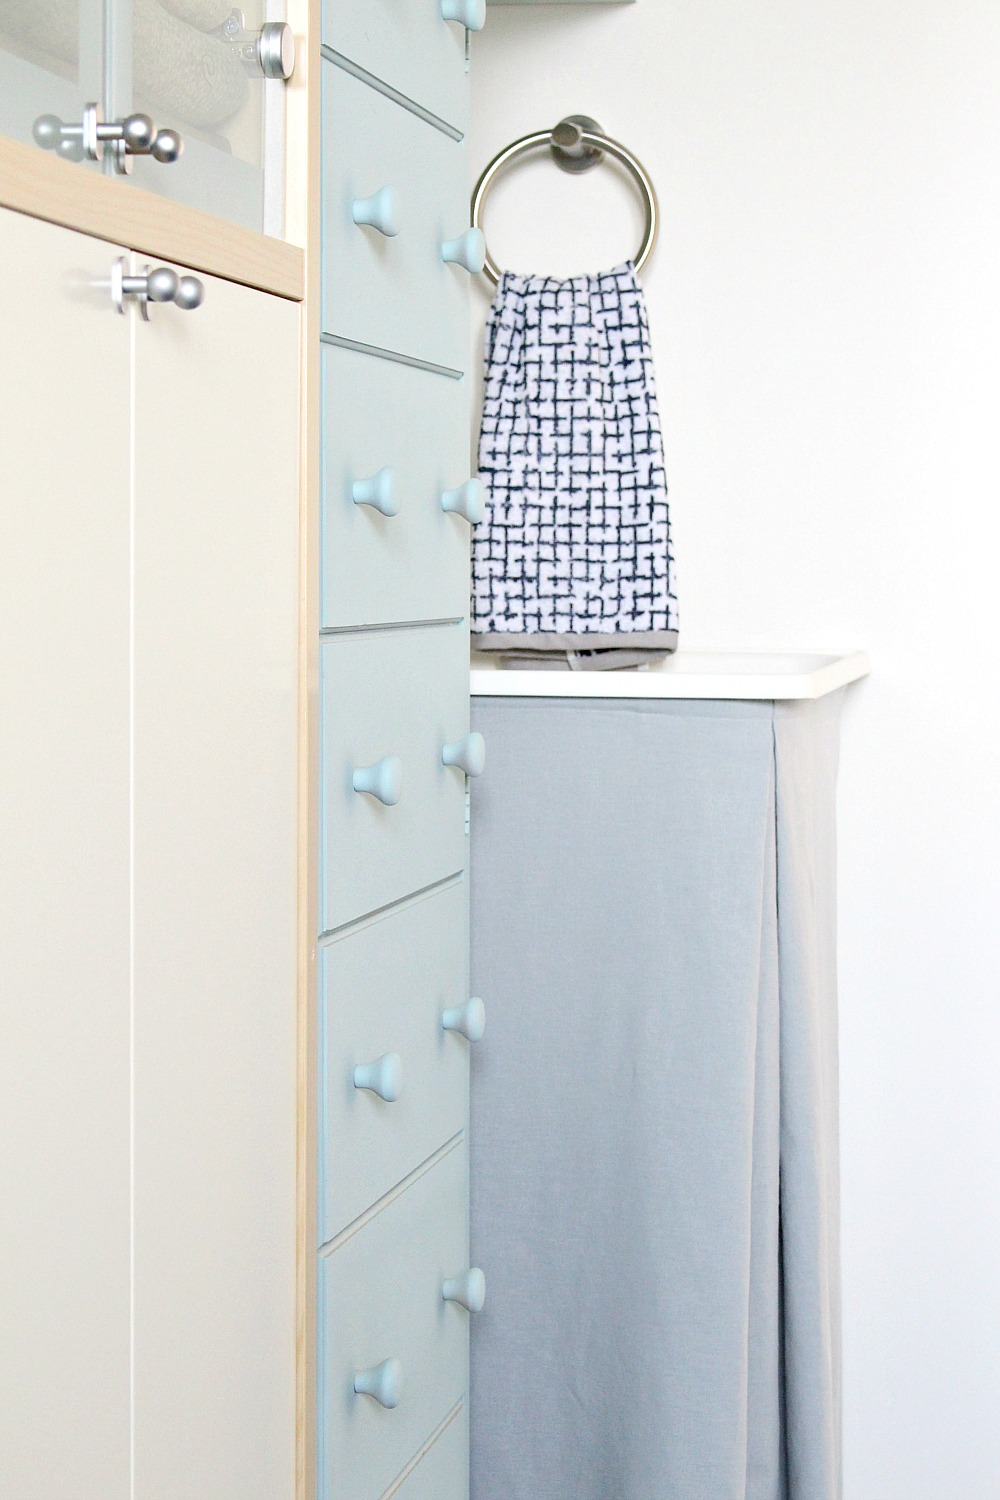 DIY Utility Sink Skirt | New Sink + Faucet for the Fish Room!